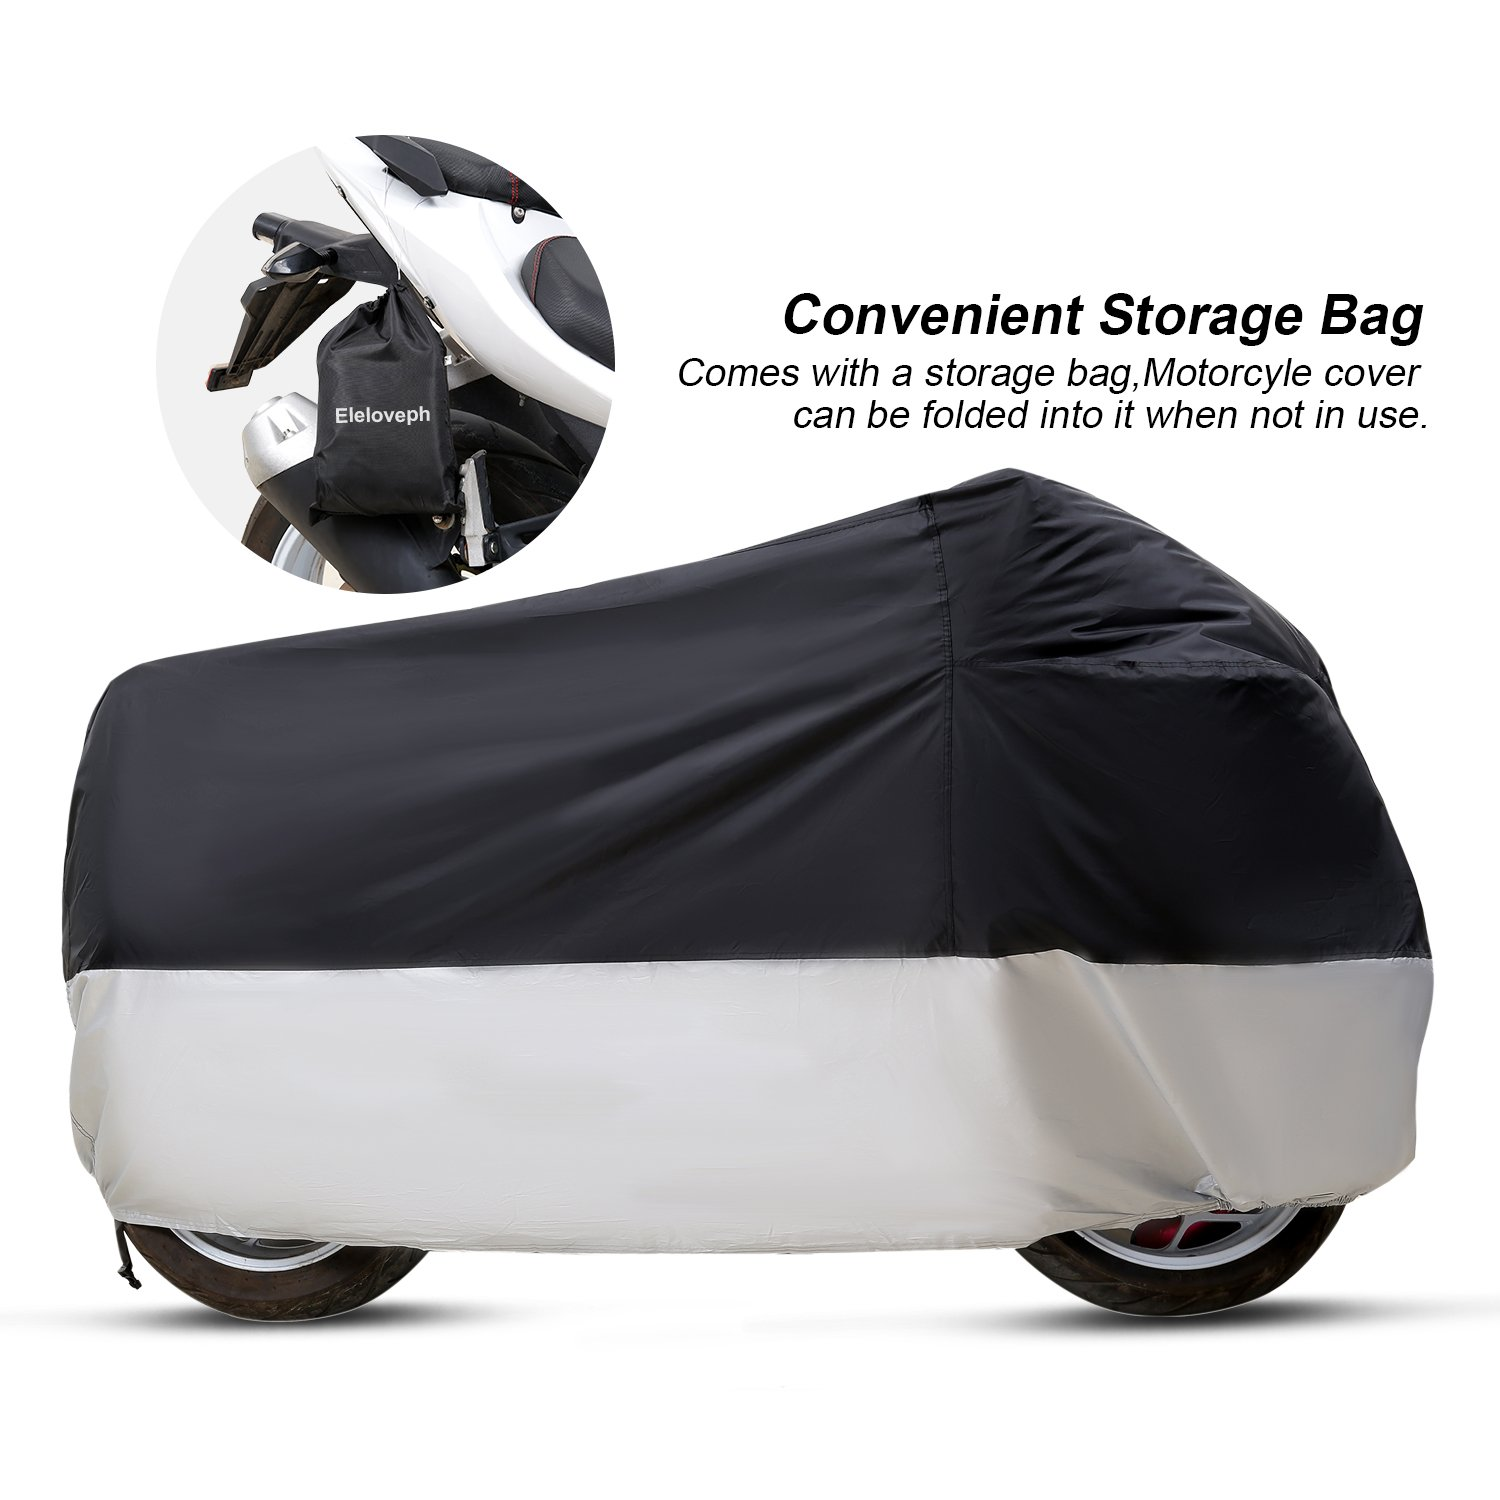 Eleloveph Motorcycle Cover - All Season Waterproof Outdoor Protection - Precision Fit for Tour Bikes, Choppers and Cruisers Protect Against Dust,Rain,Snow and Sun (XXXXL-116''x43''x55'', Black&Sliver) by Eleloveph (Image #5)